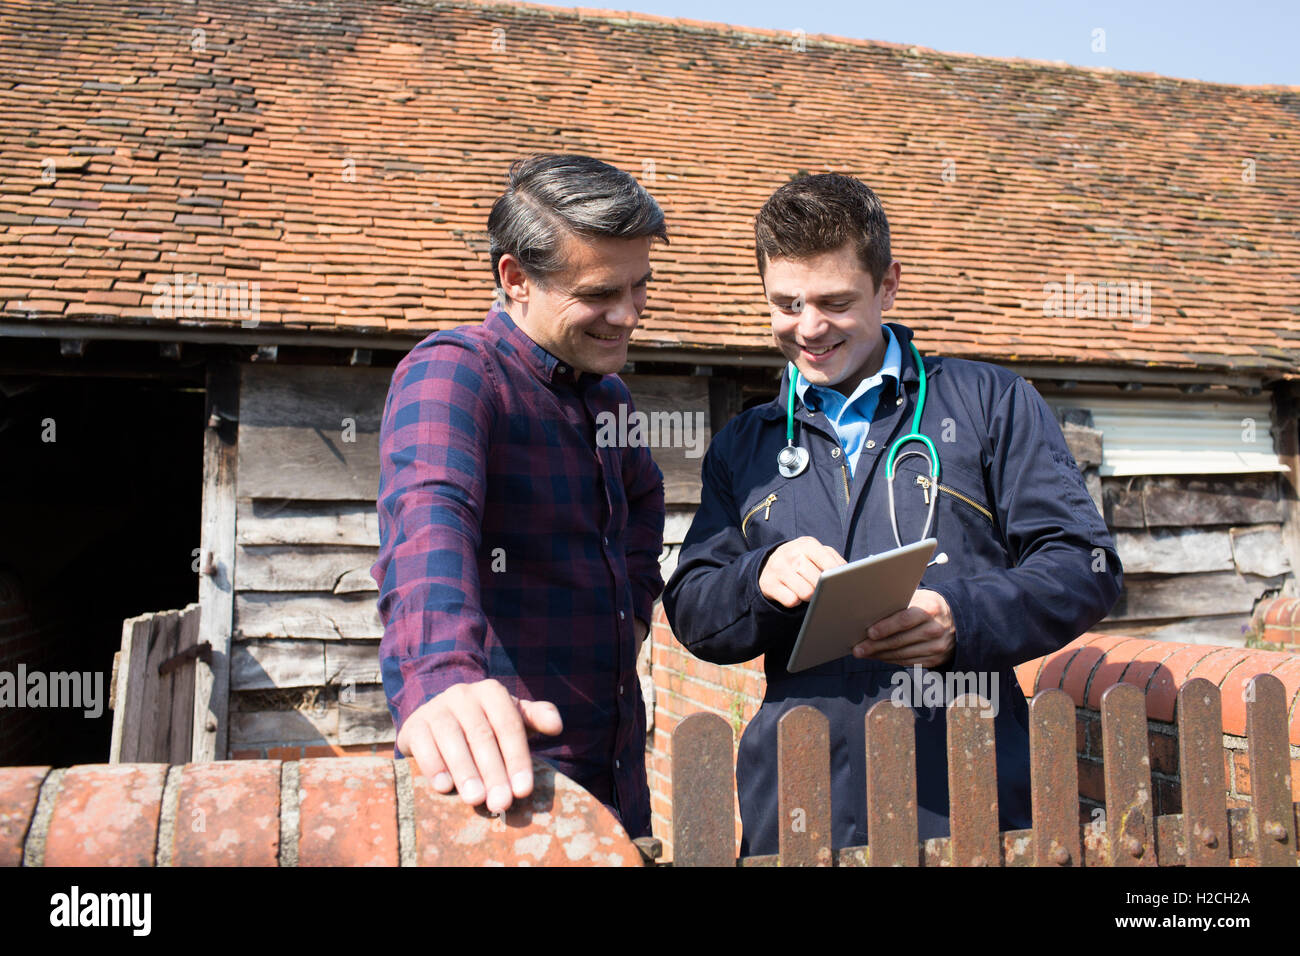 Farmer And Vet Looking At Digital Tablet Together - Stock Image